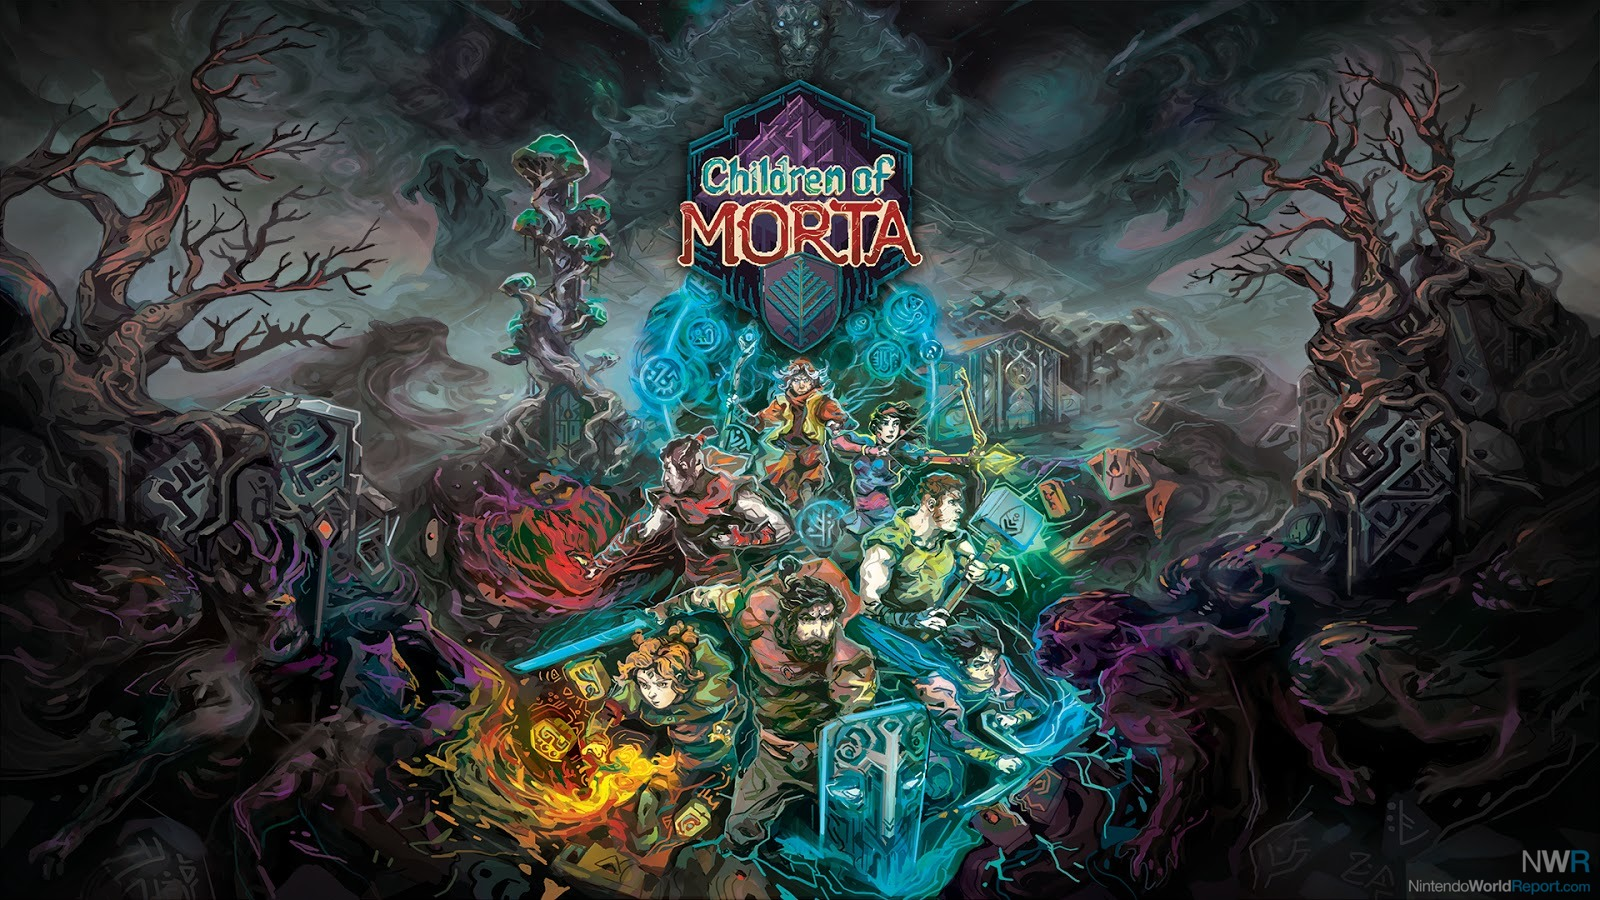 Children of Morta will release this September 2019